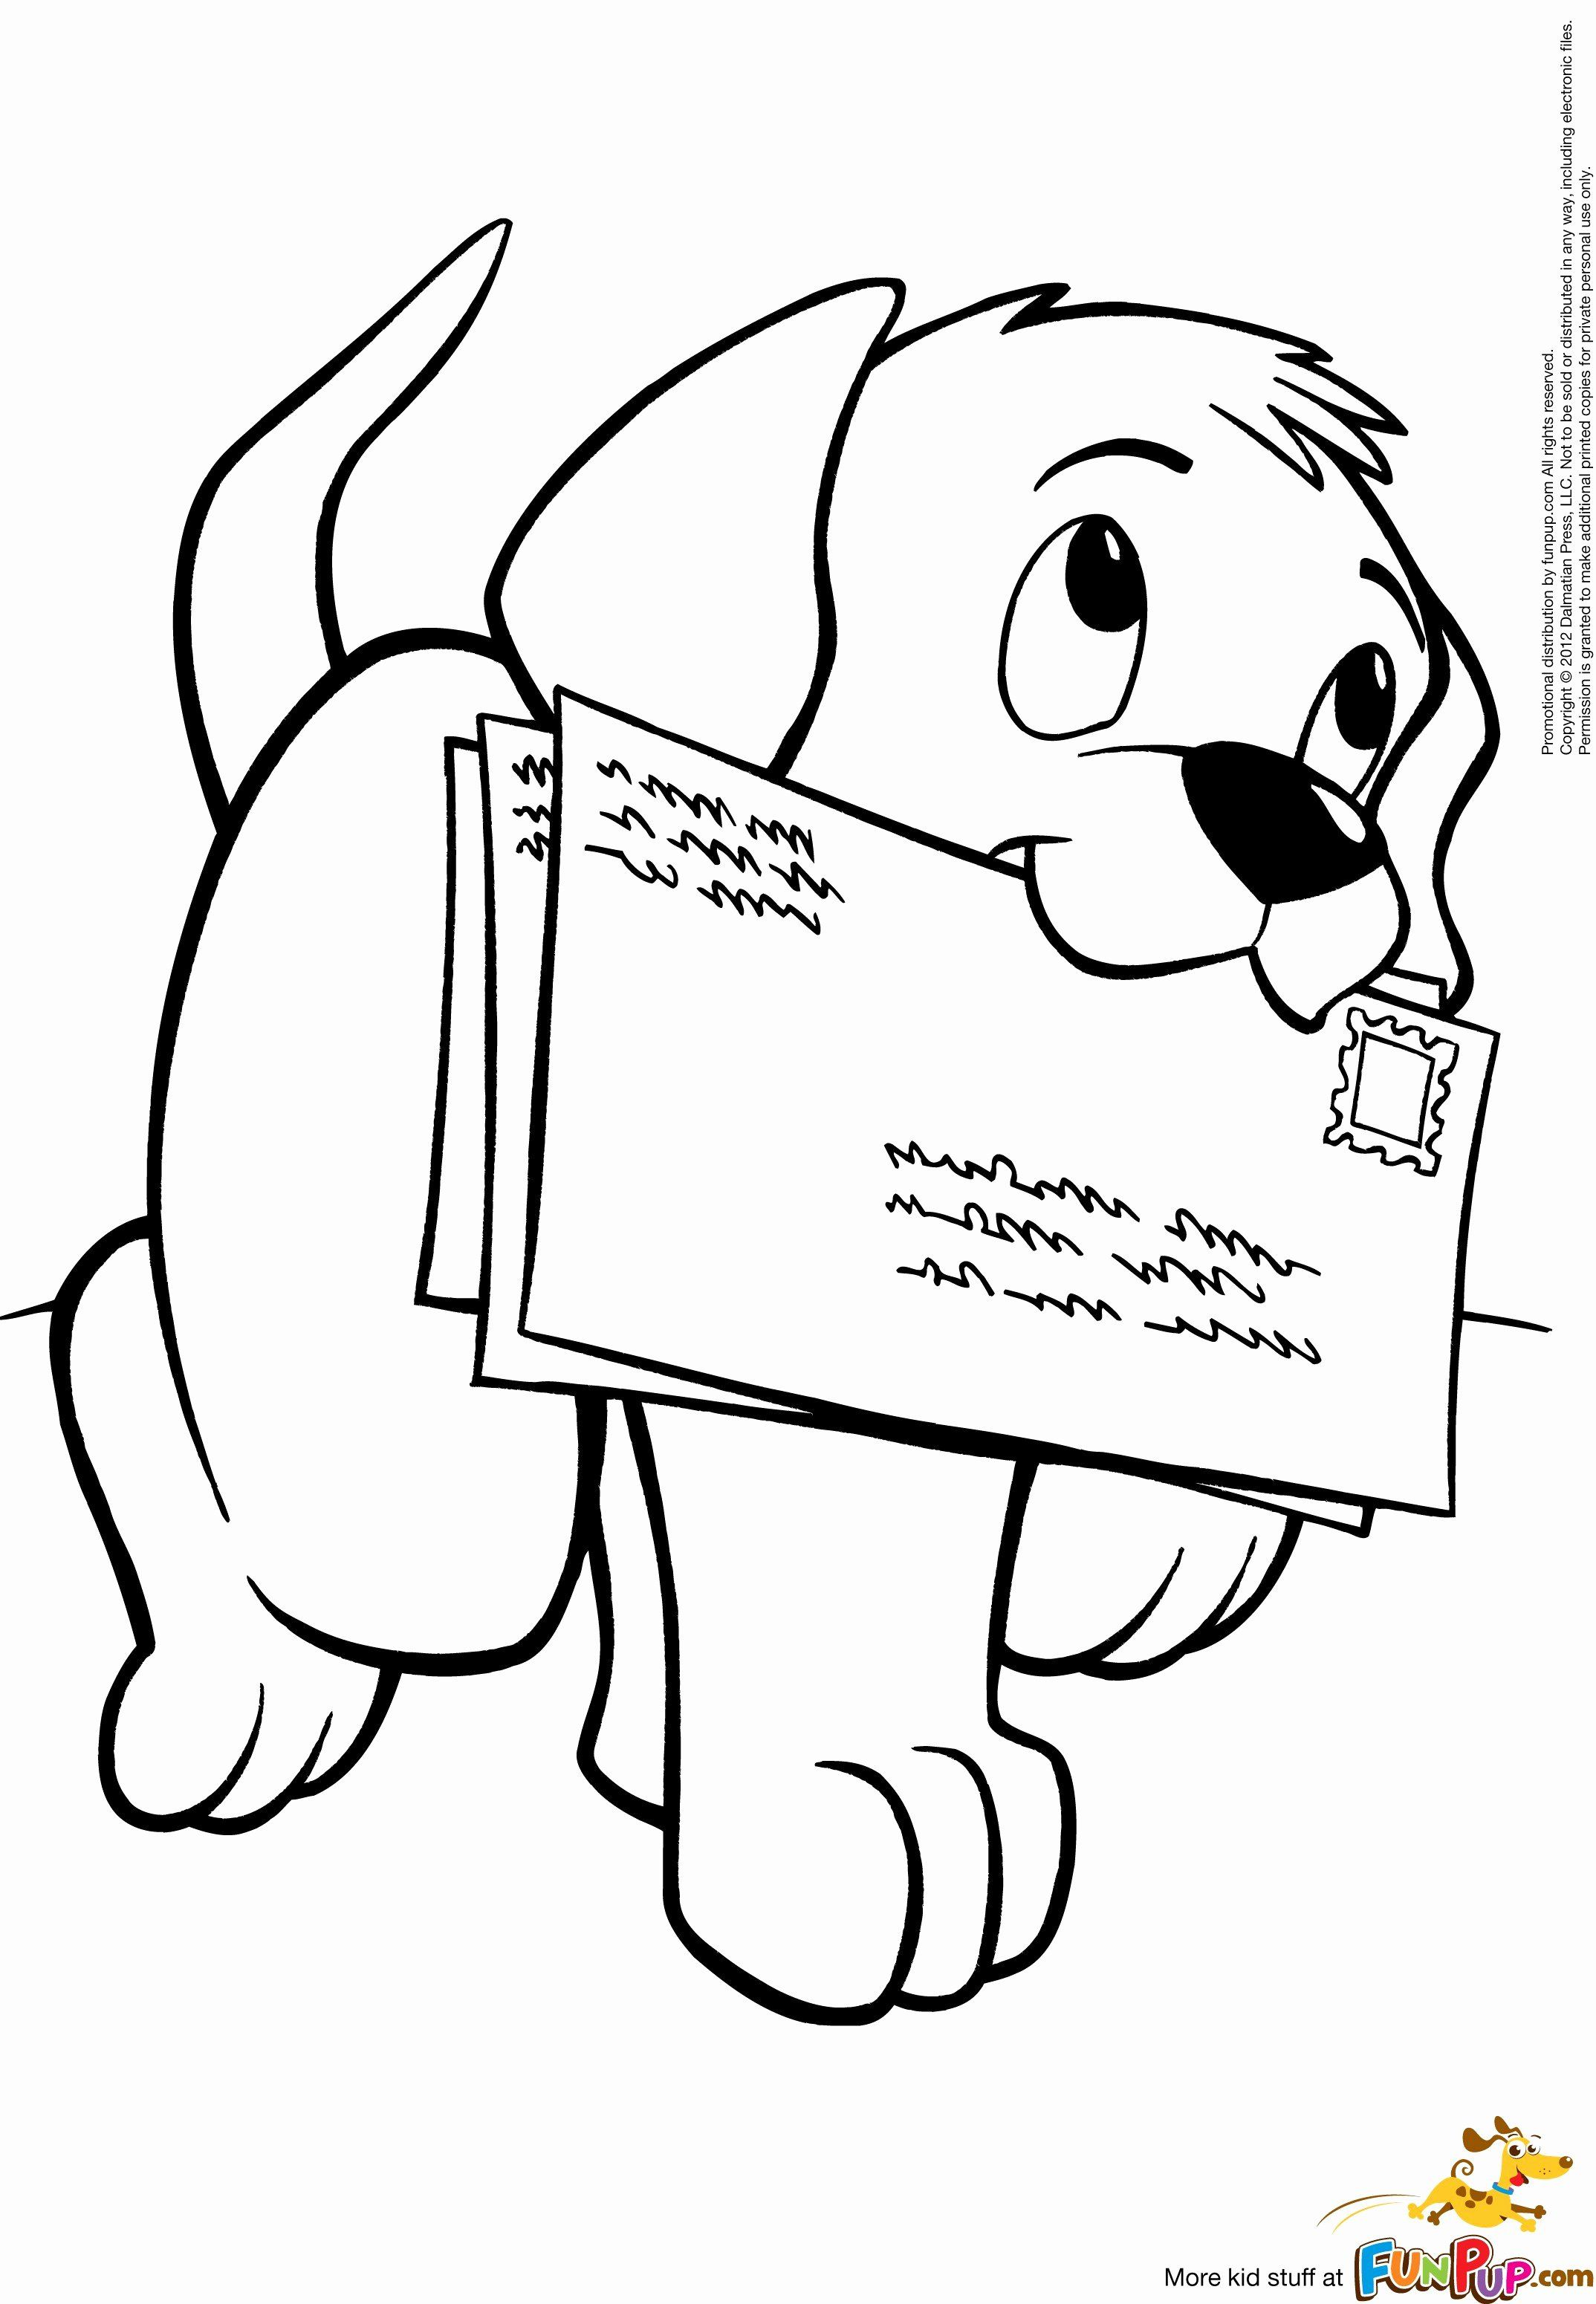 Kids Drawing Book Boat Best Of Printable Coloring Page For Kids Thelonelymoon In 2020 Puppy Coloring Pages Animal Coloring Books Dog Coloring Page